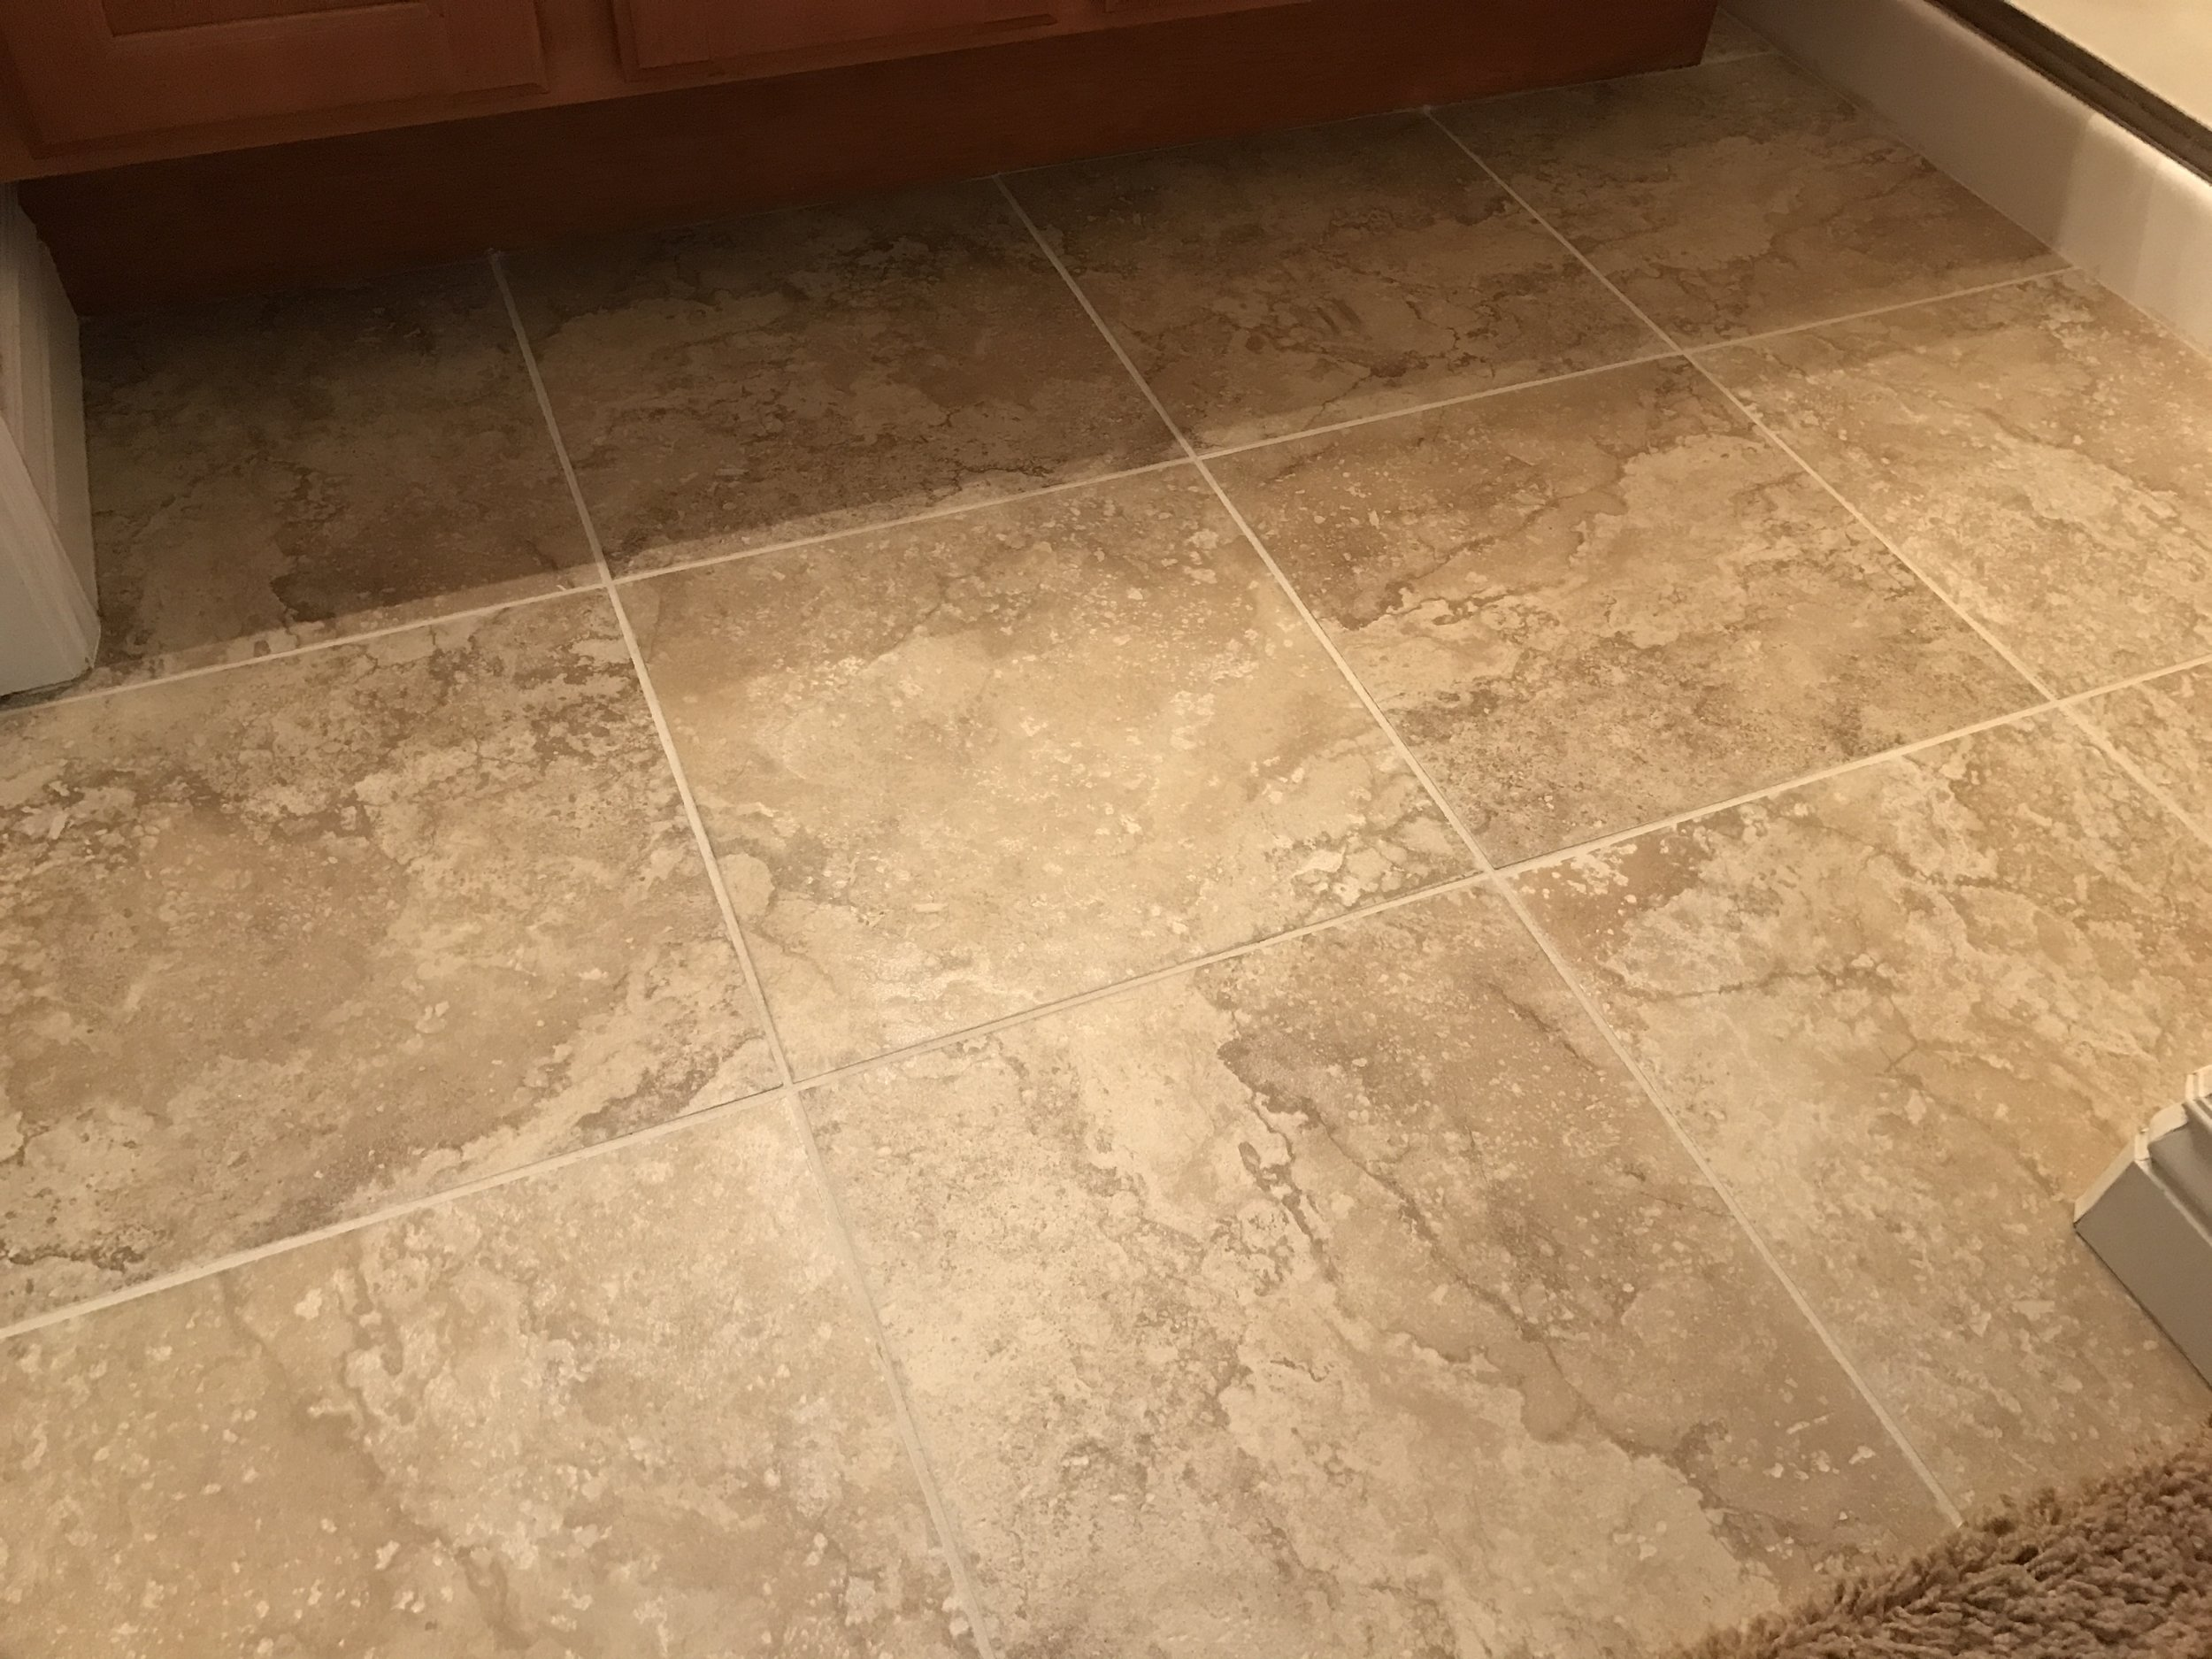 Floor cleaned and grout re-colored.